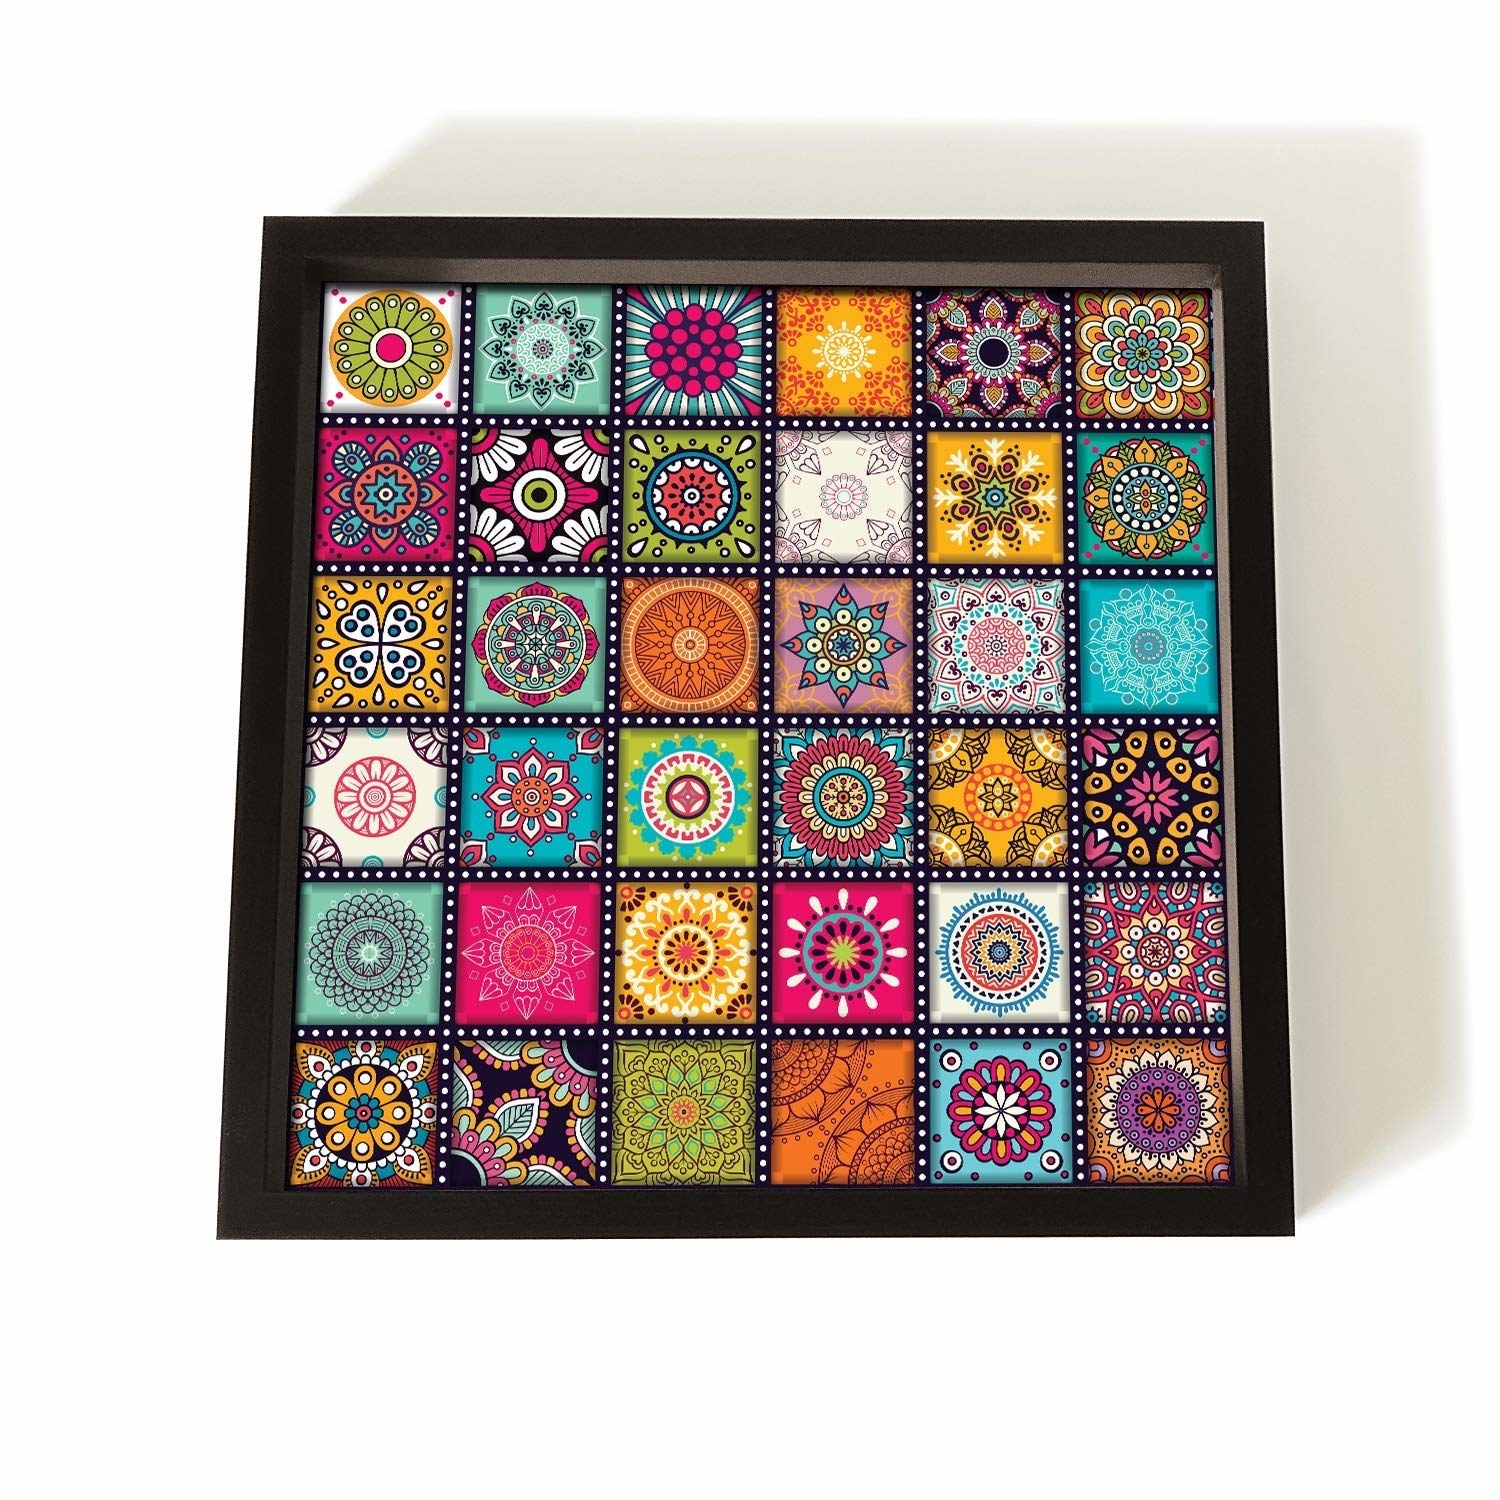 A serving tray with a colourful mosaic design